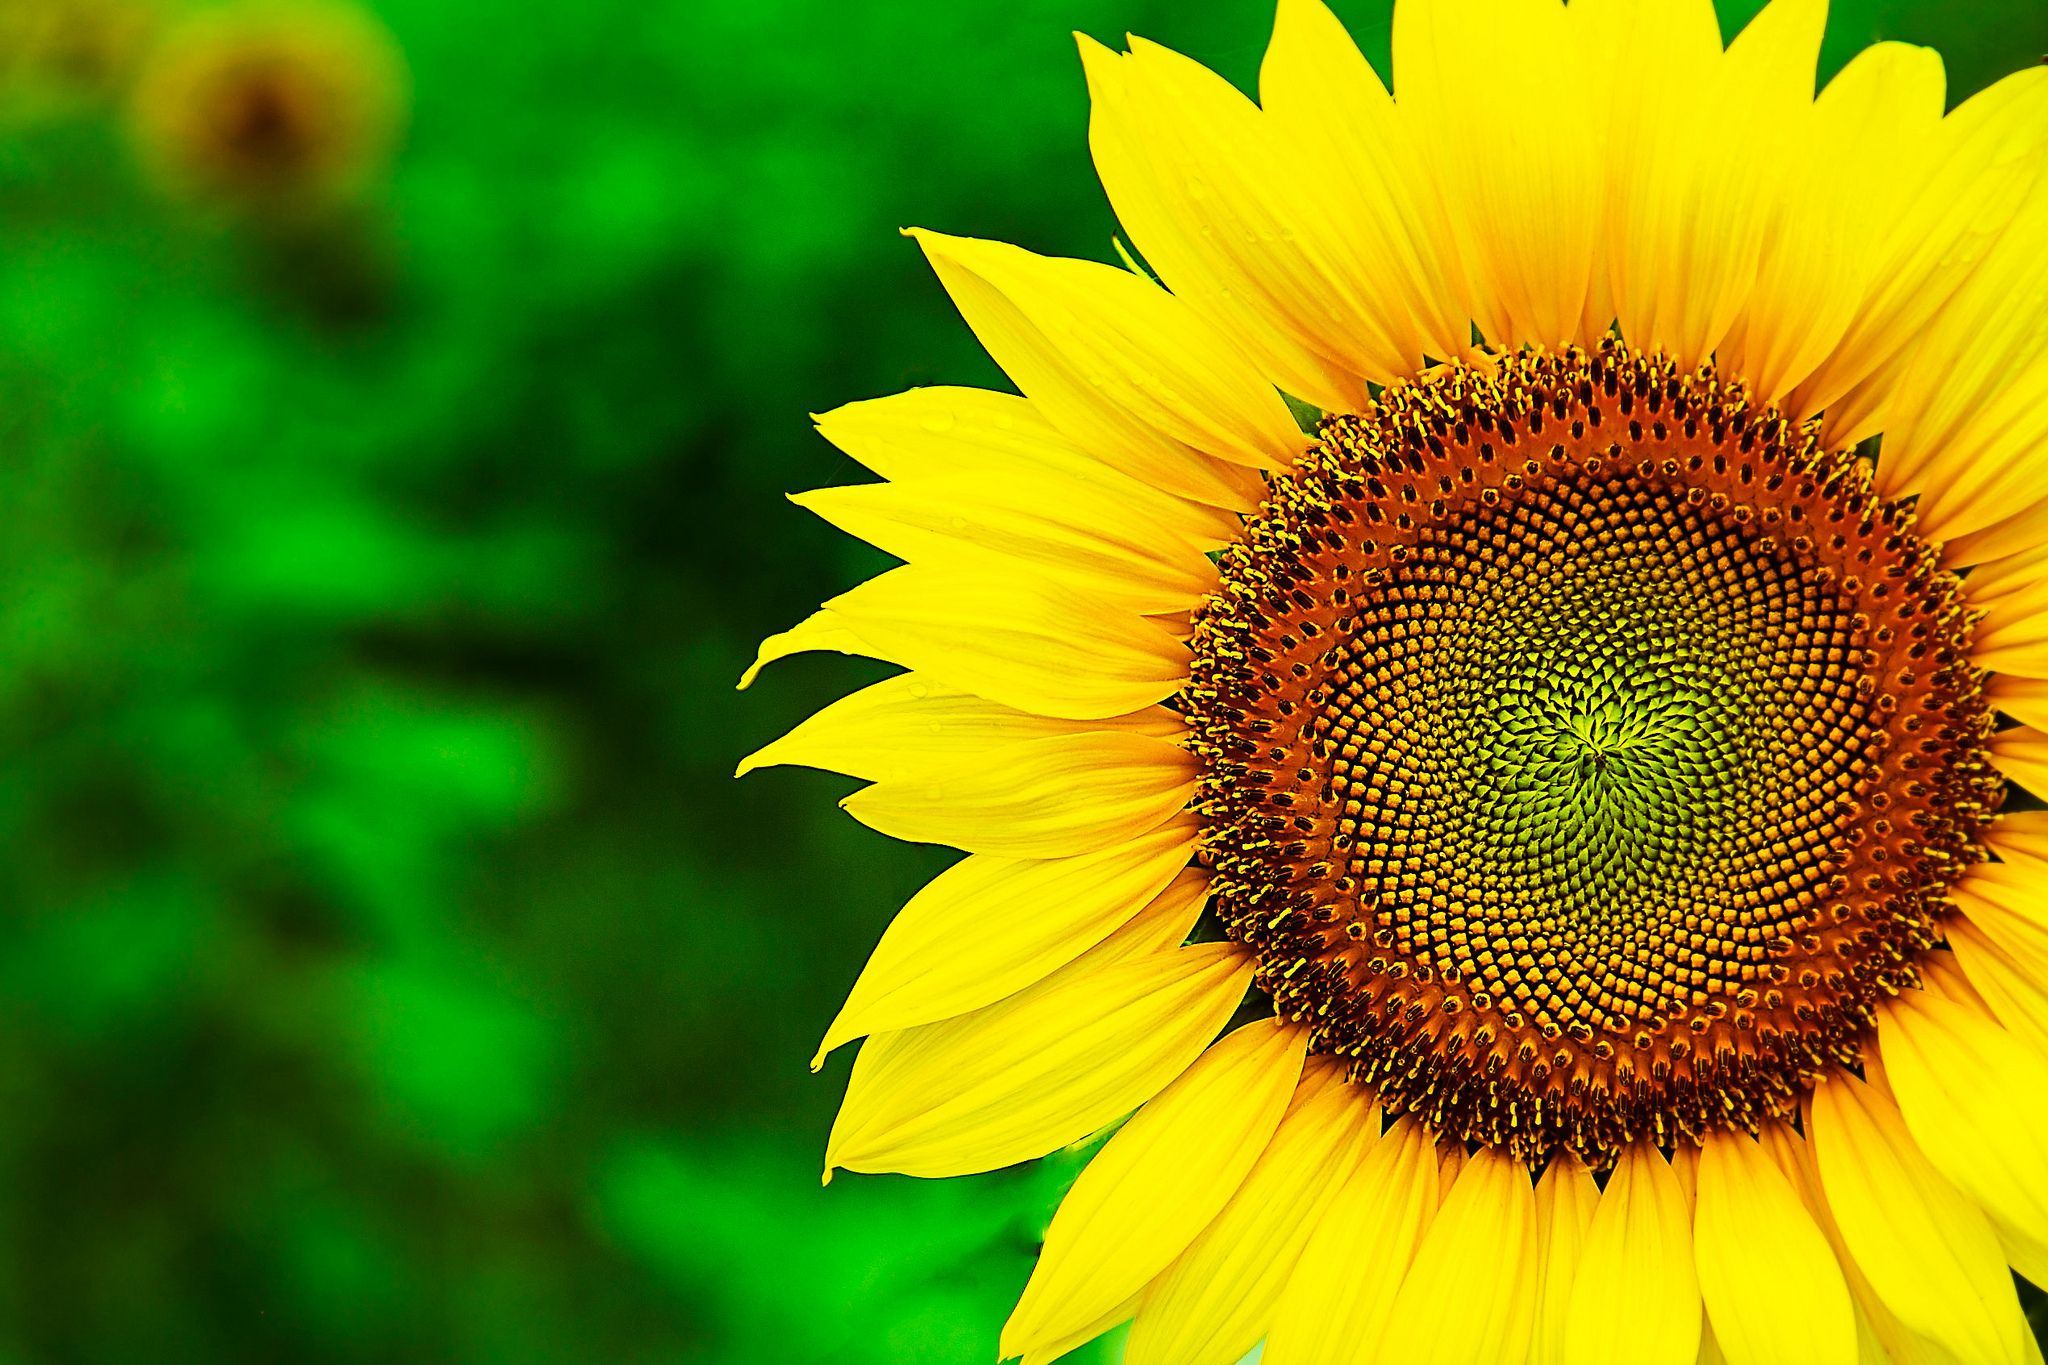 Black Sunflower Wallpapers Top Free Black Sunflower